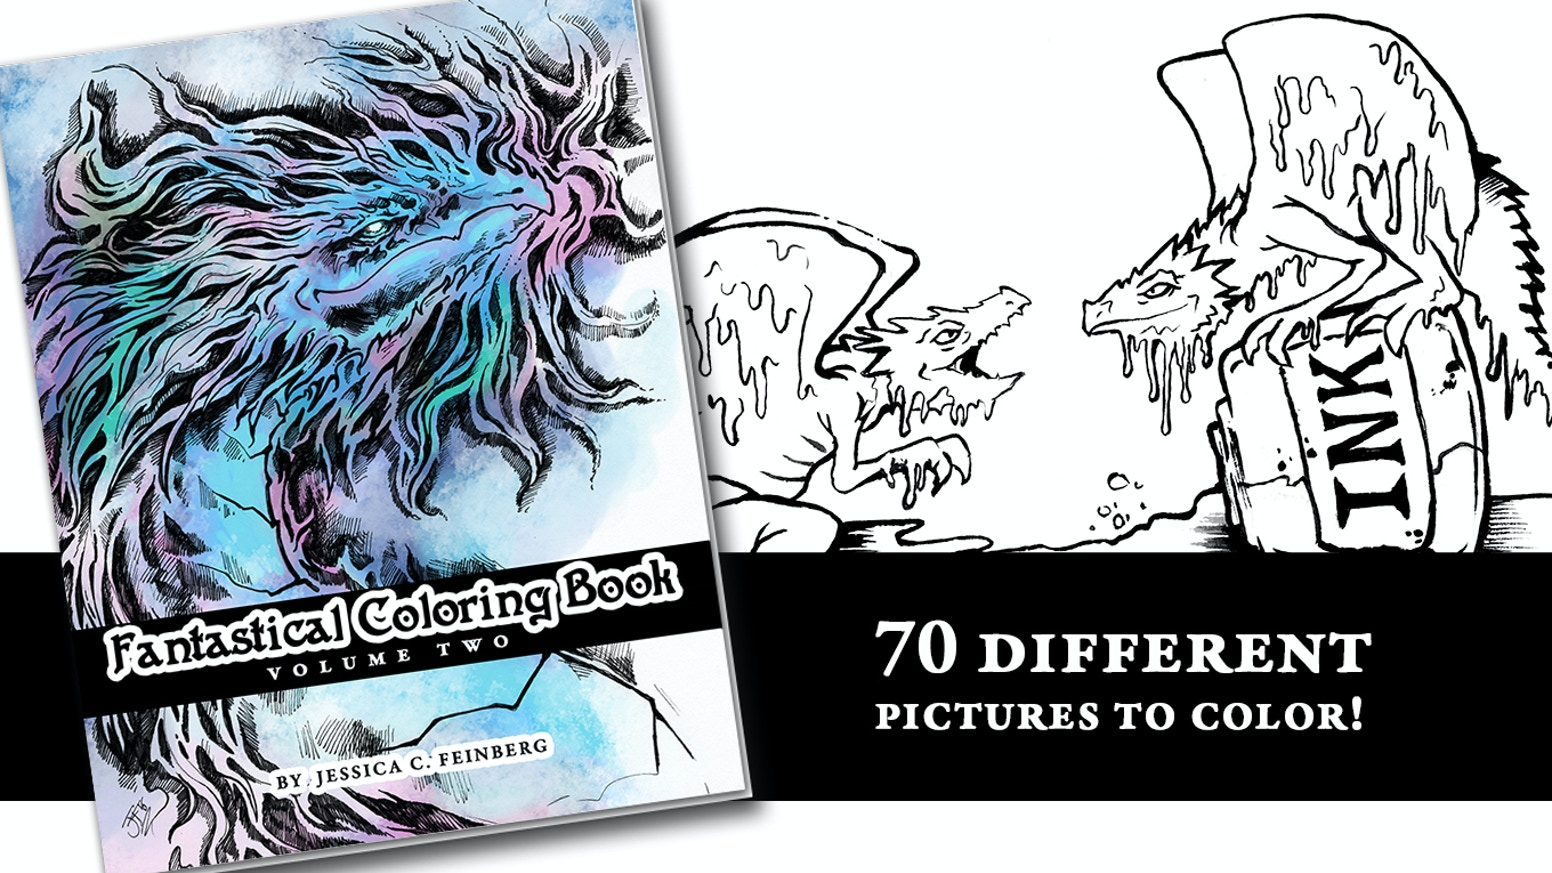 70 different fantasy pictures to color! Including dragons, mermaids, griffins and much more!